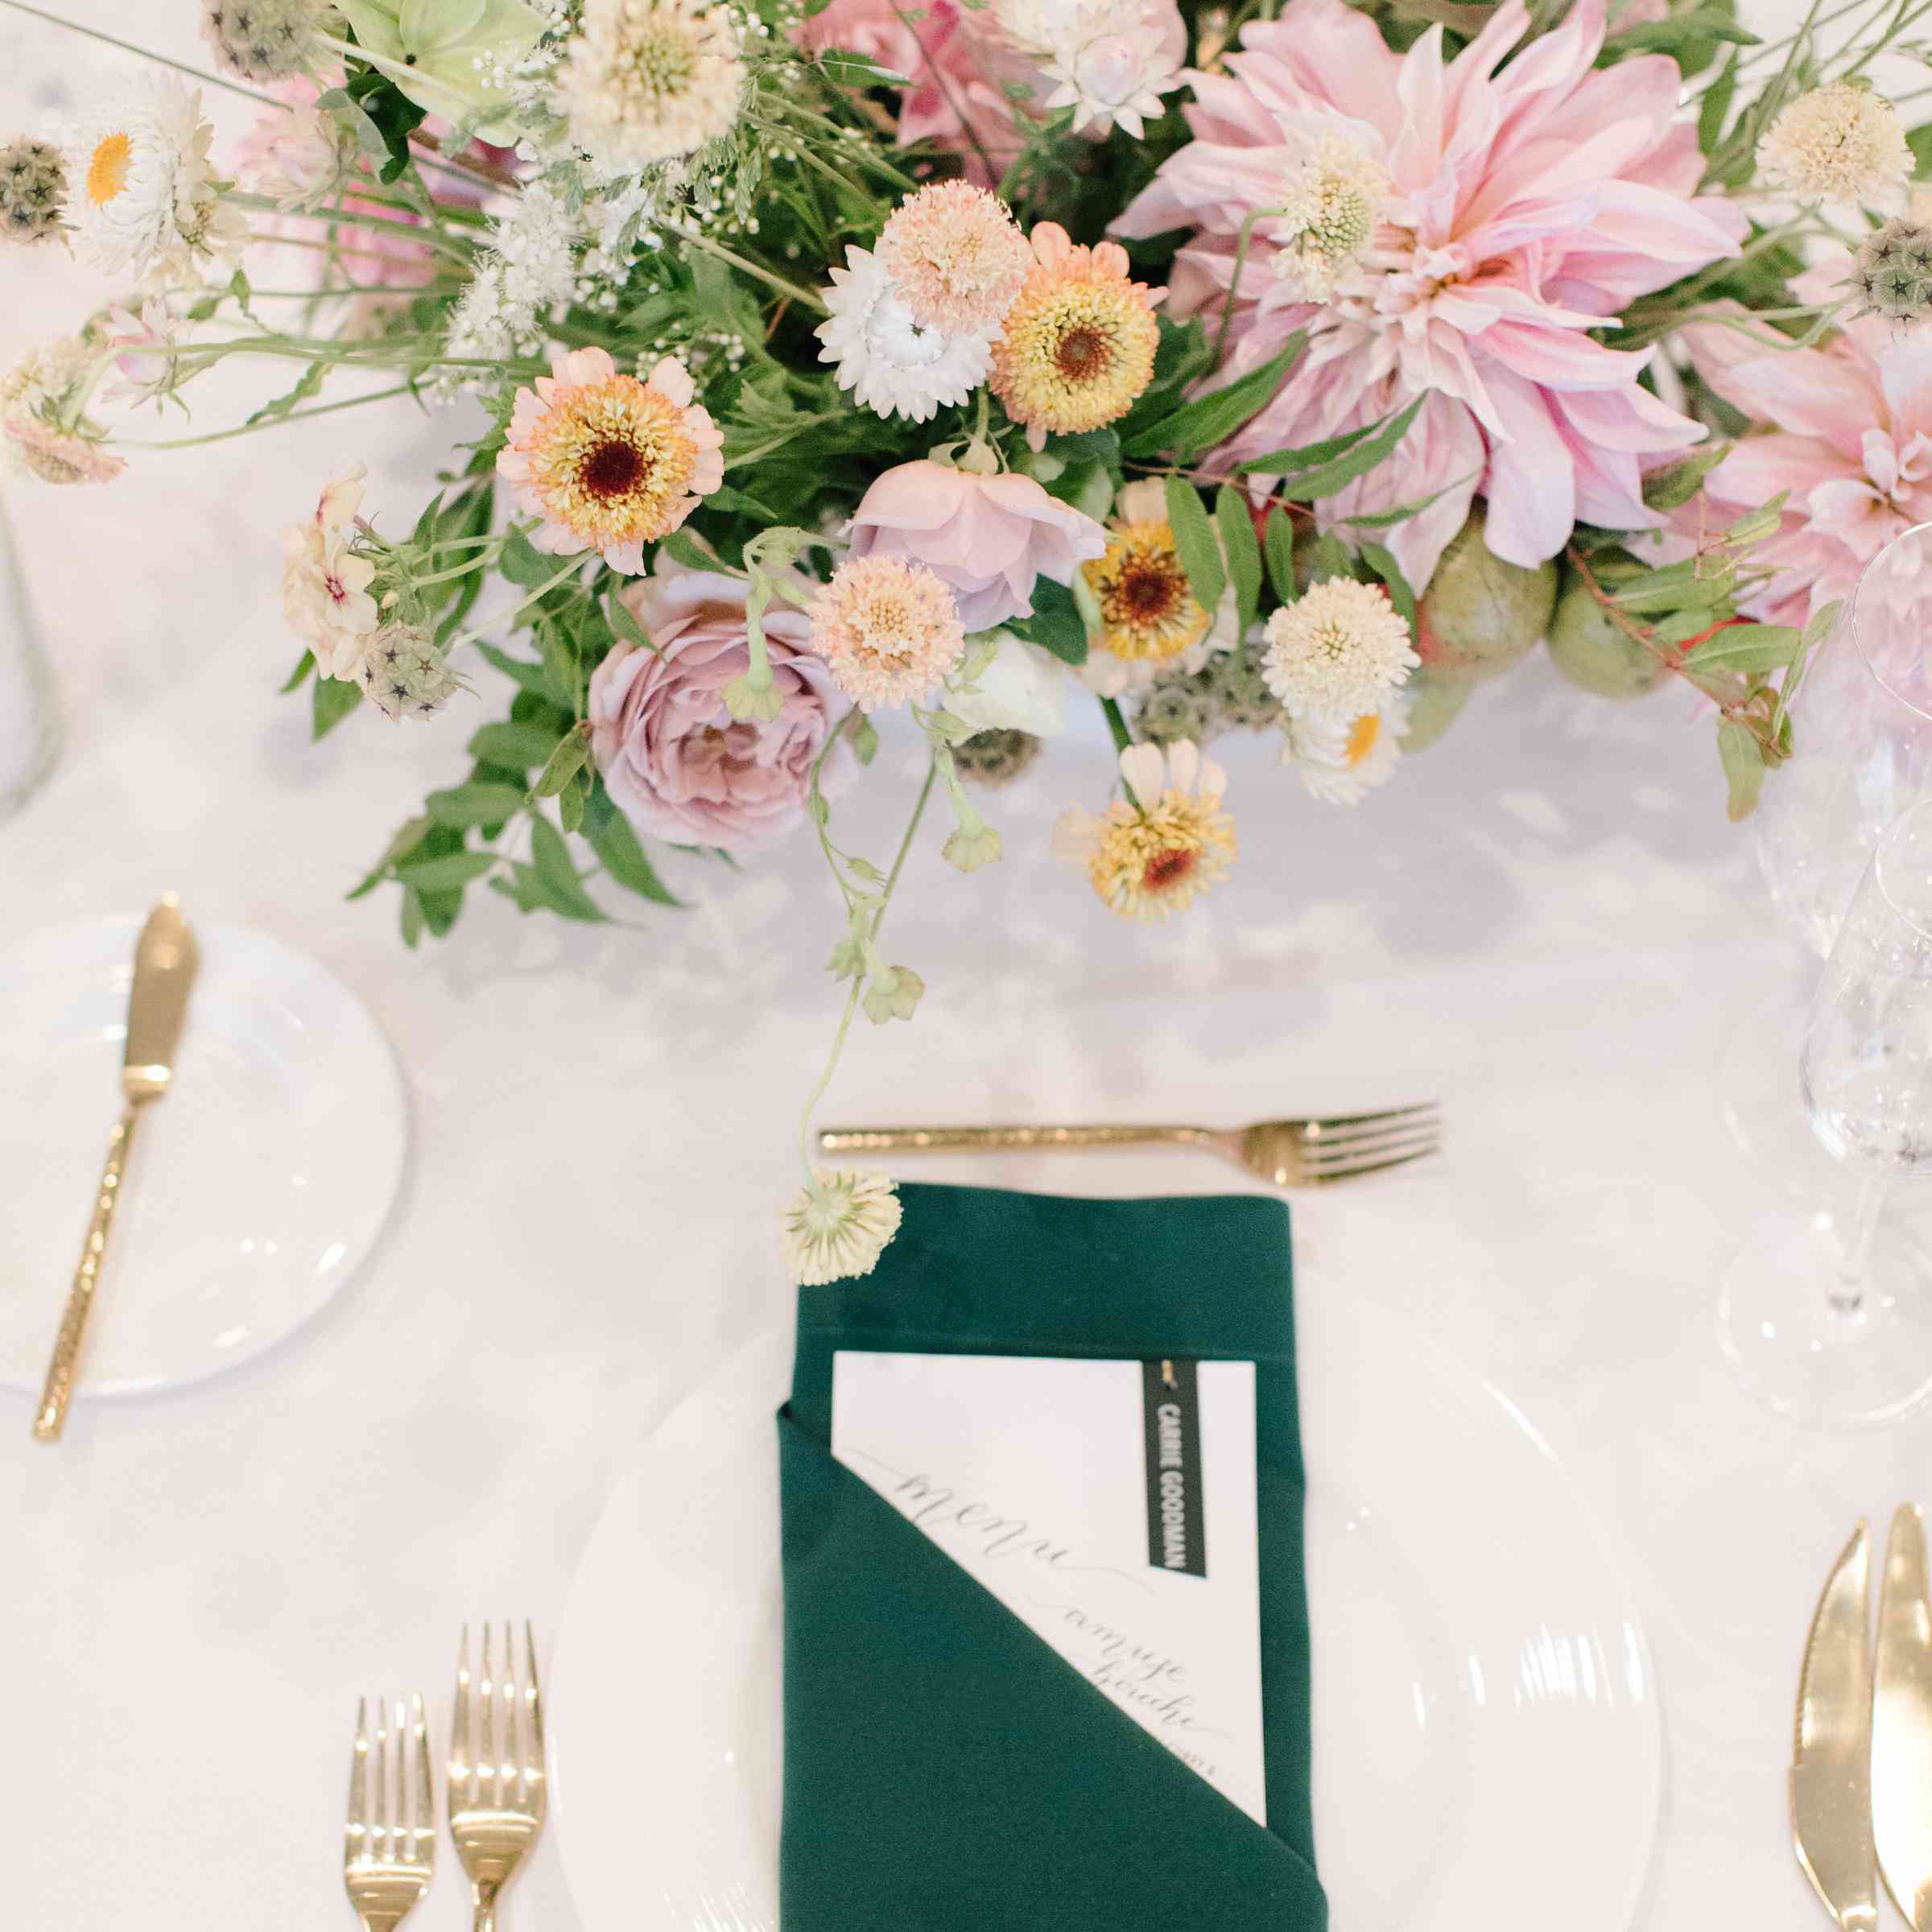 <p>gold and green place setting</p>